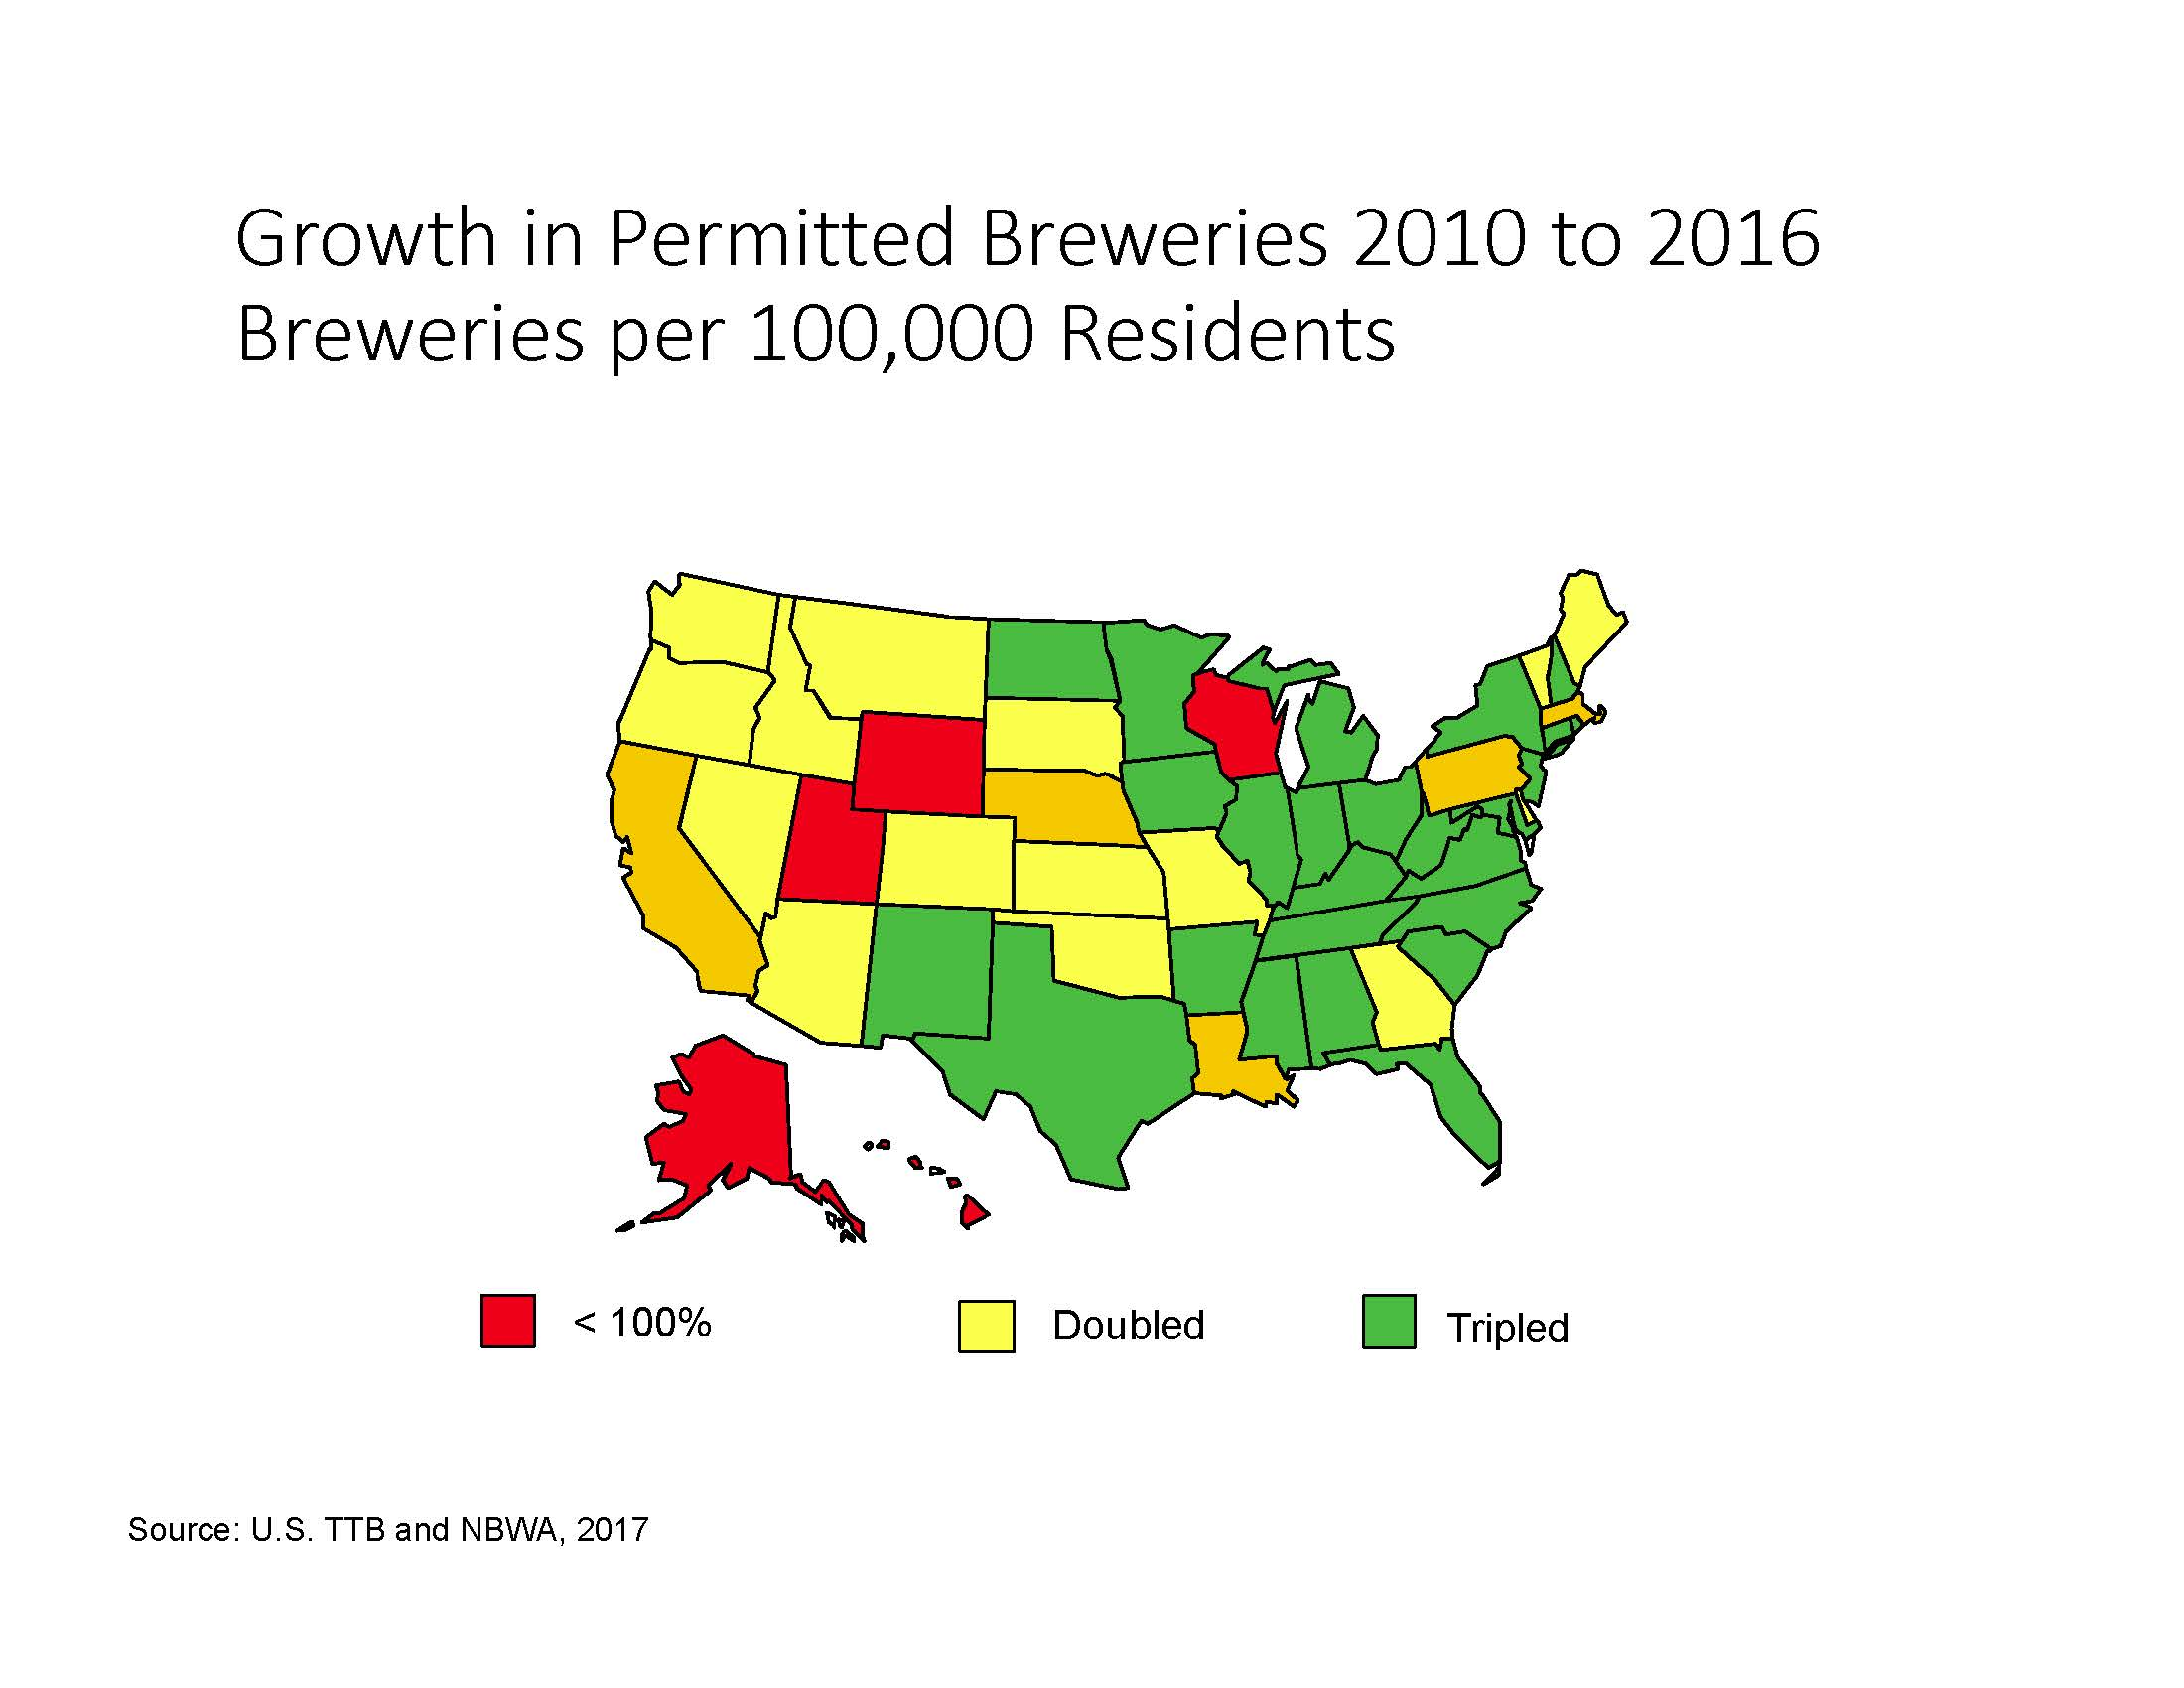 Growth in Permitted Breweries 1990 to 2016